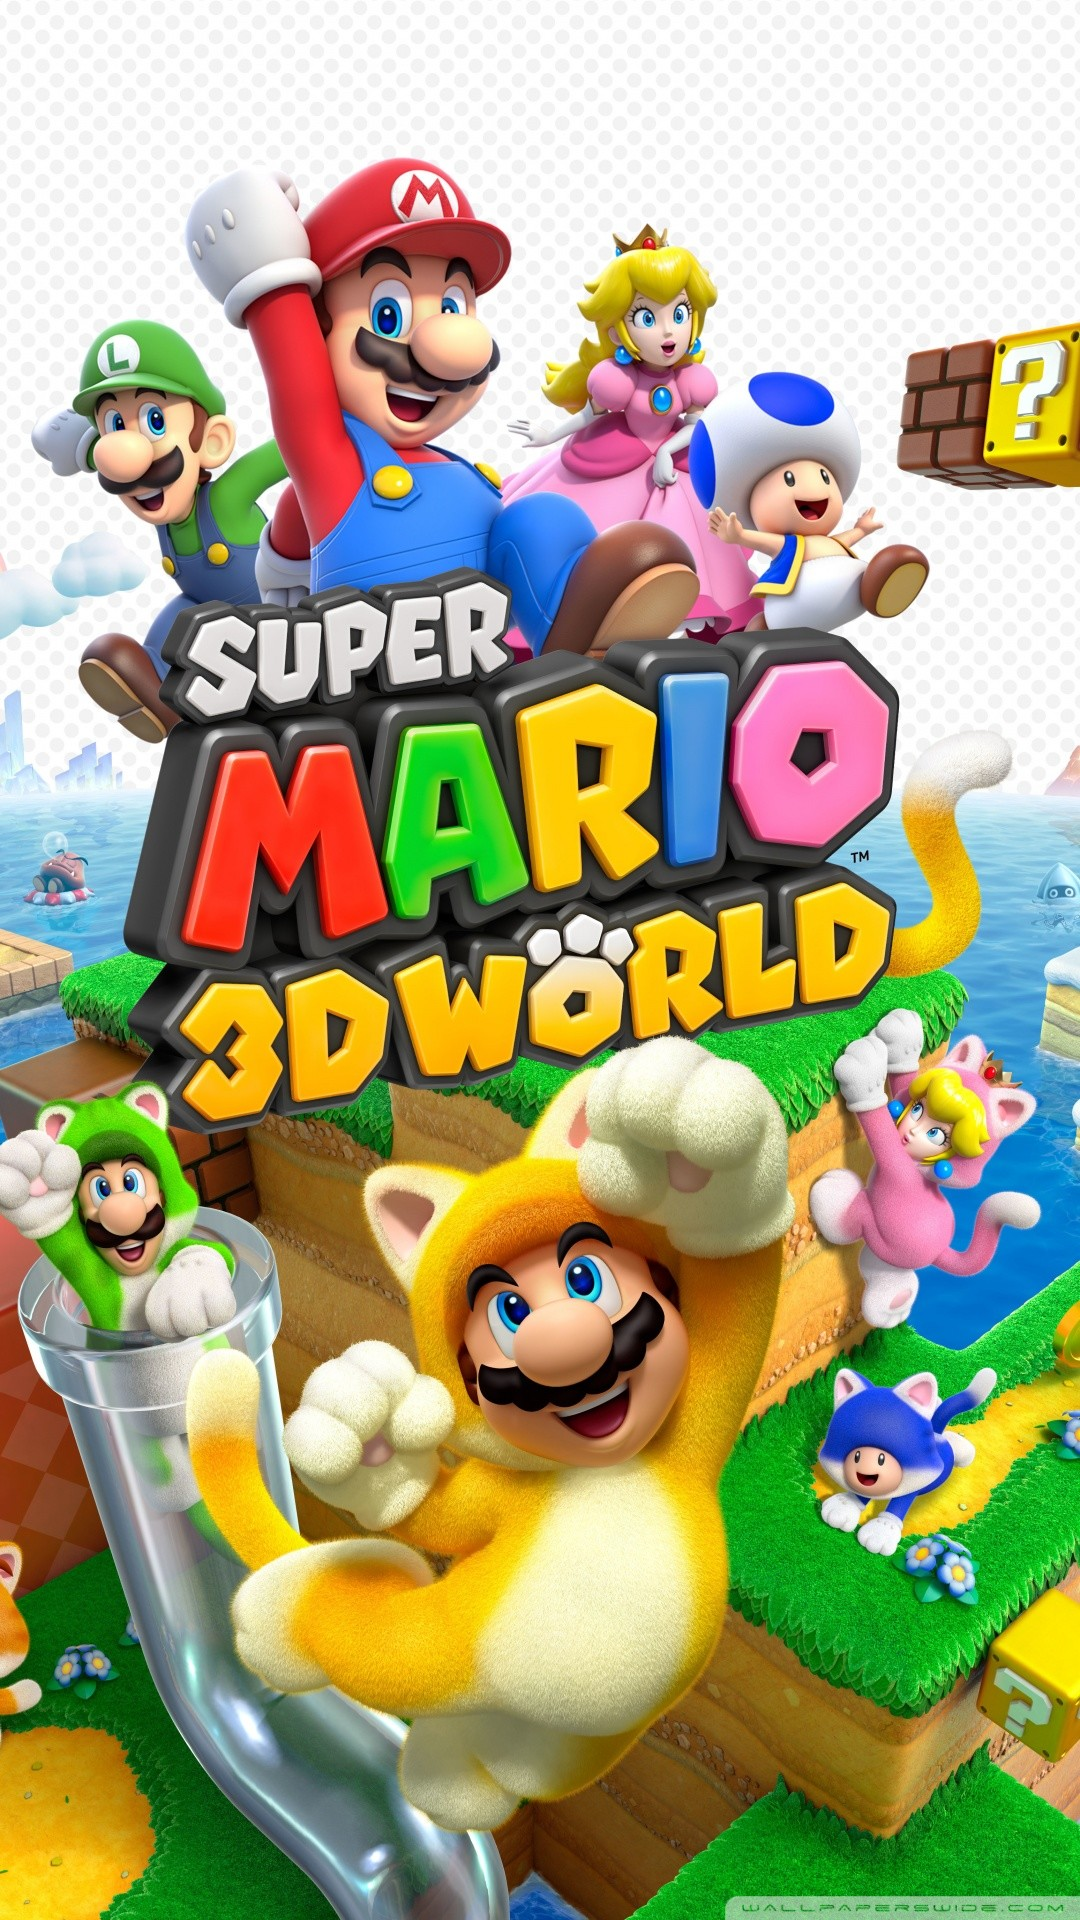 Free Super Mario 3D World video game phone wallpaper by mustangseatrice